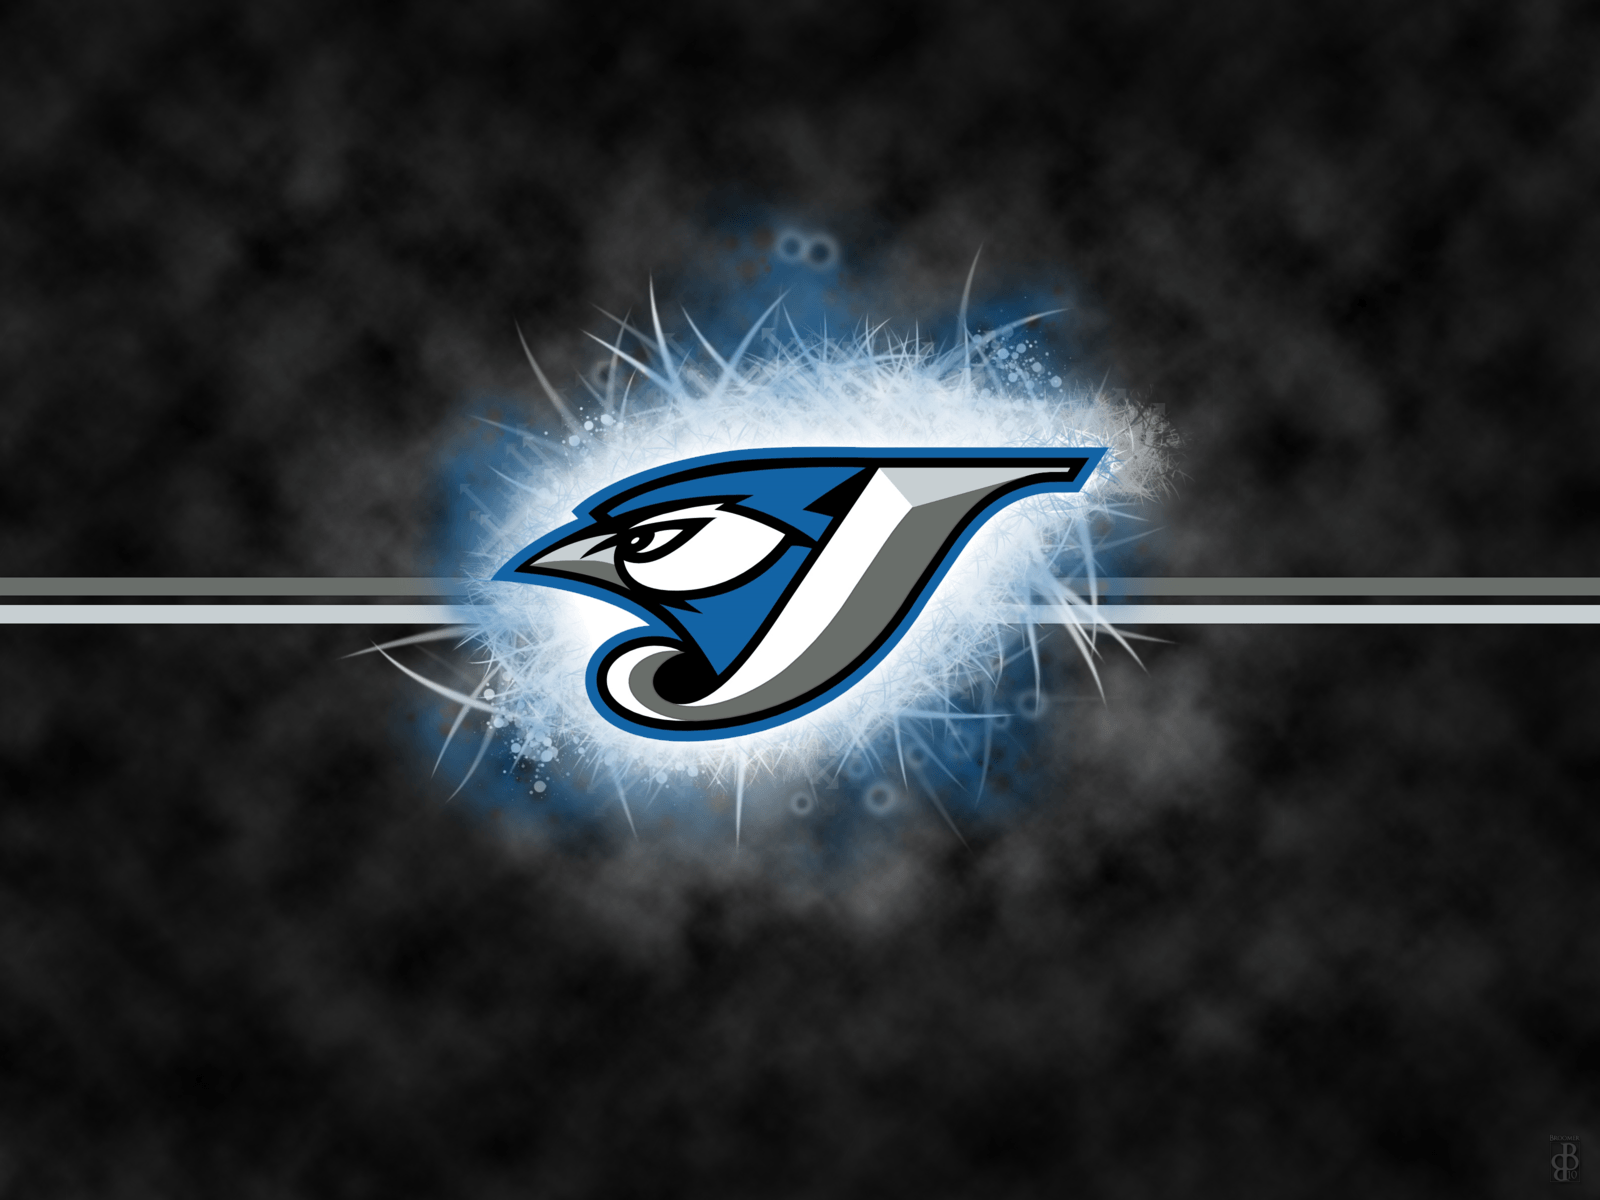 Toronto Blue Jays Wallpapers 2015 - Wallpaper Cave